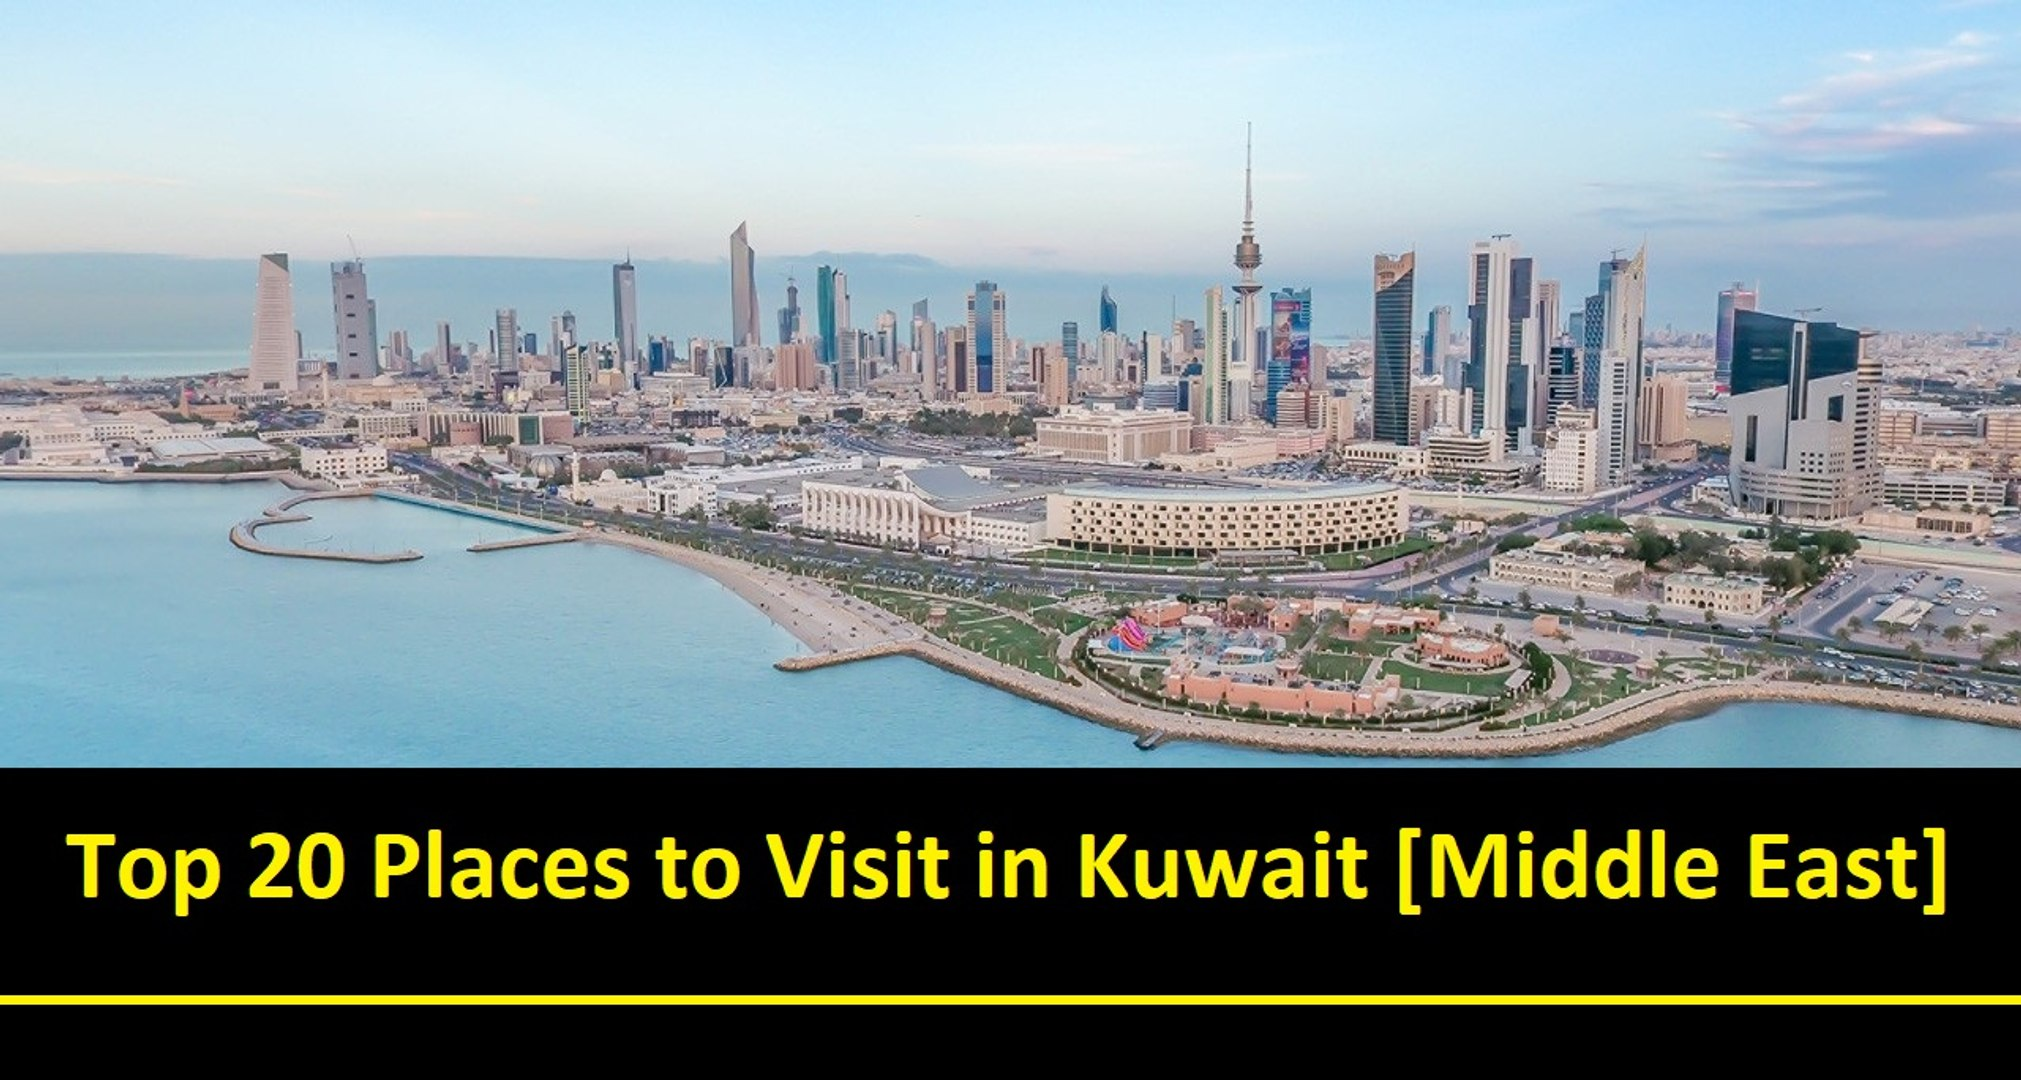 Top 20 Places to Visit in Kuwait [Middle East] - A Tour Through Images - Kuwait [Middle East]